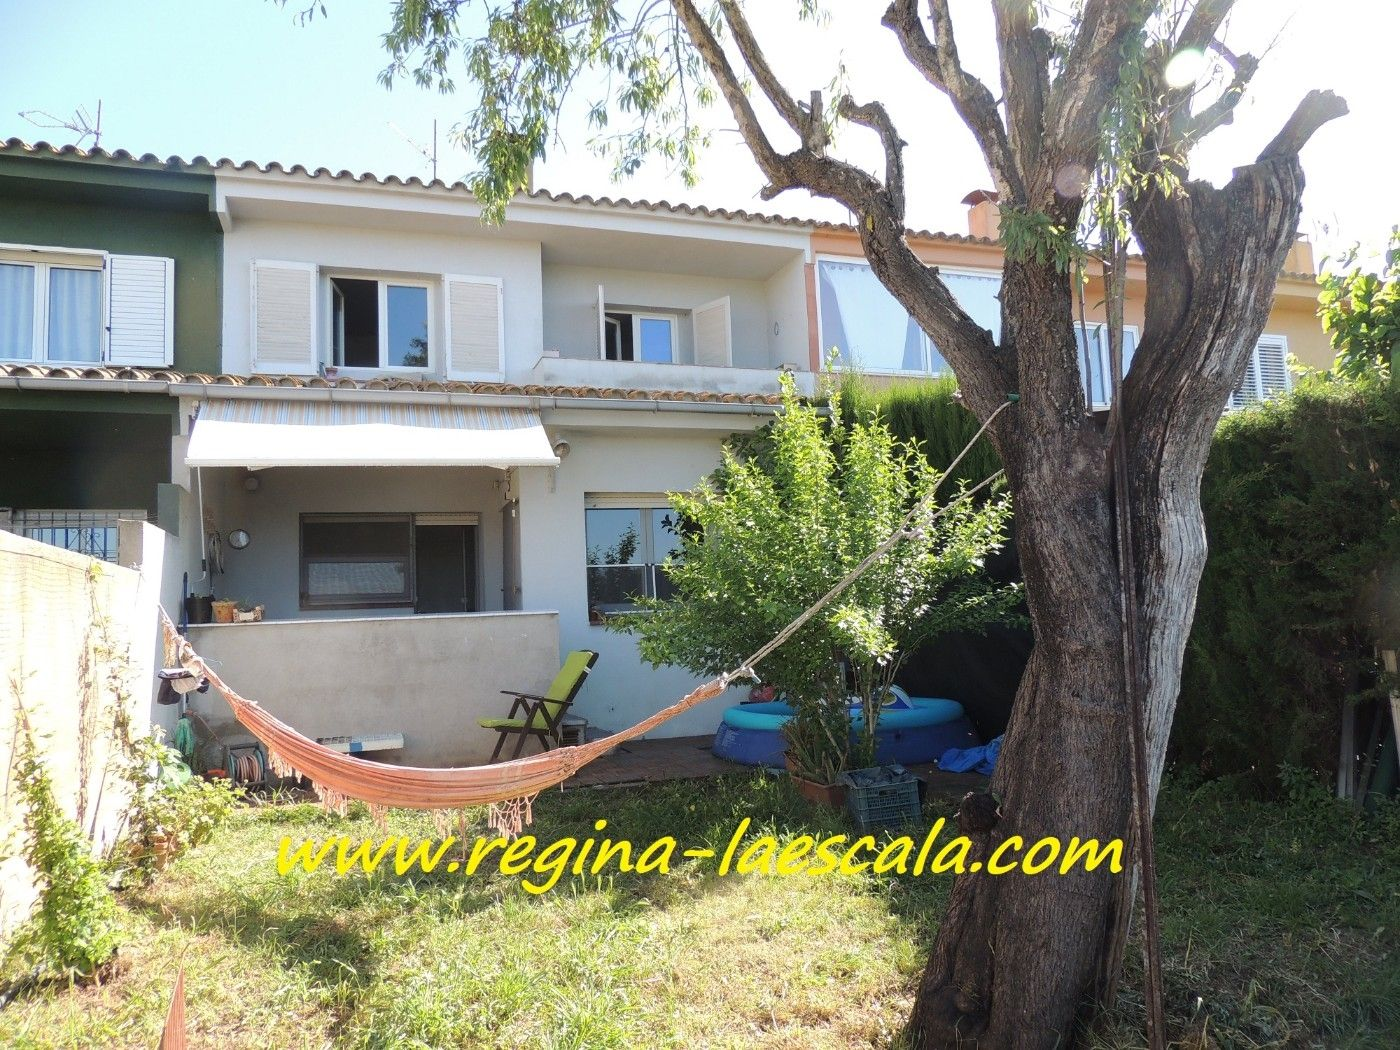 Semi detached house  Carrer cases verdes. Mitoyenne, avec charme et jardin